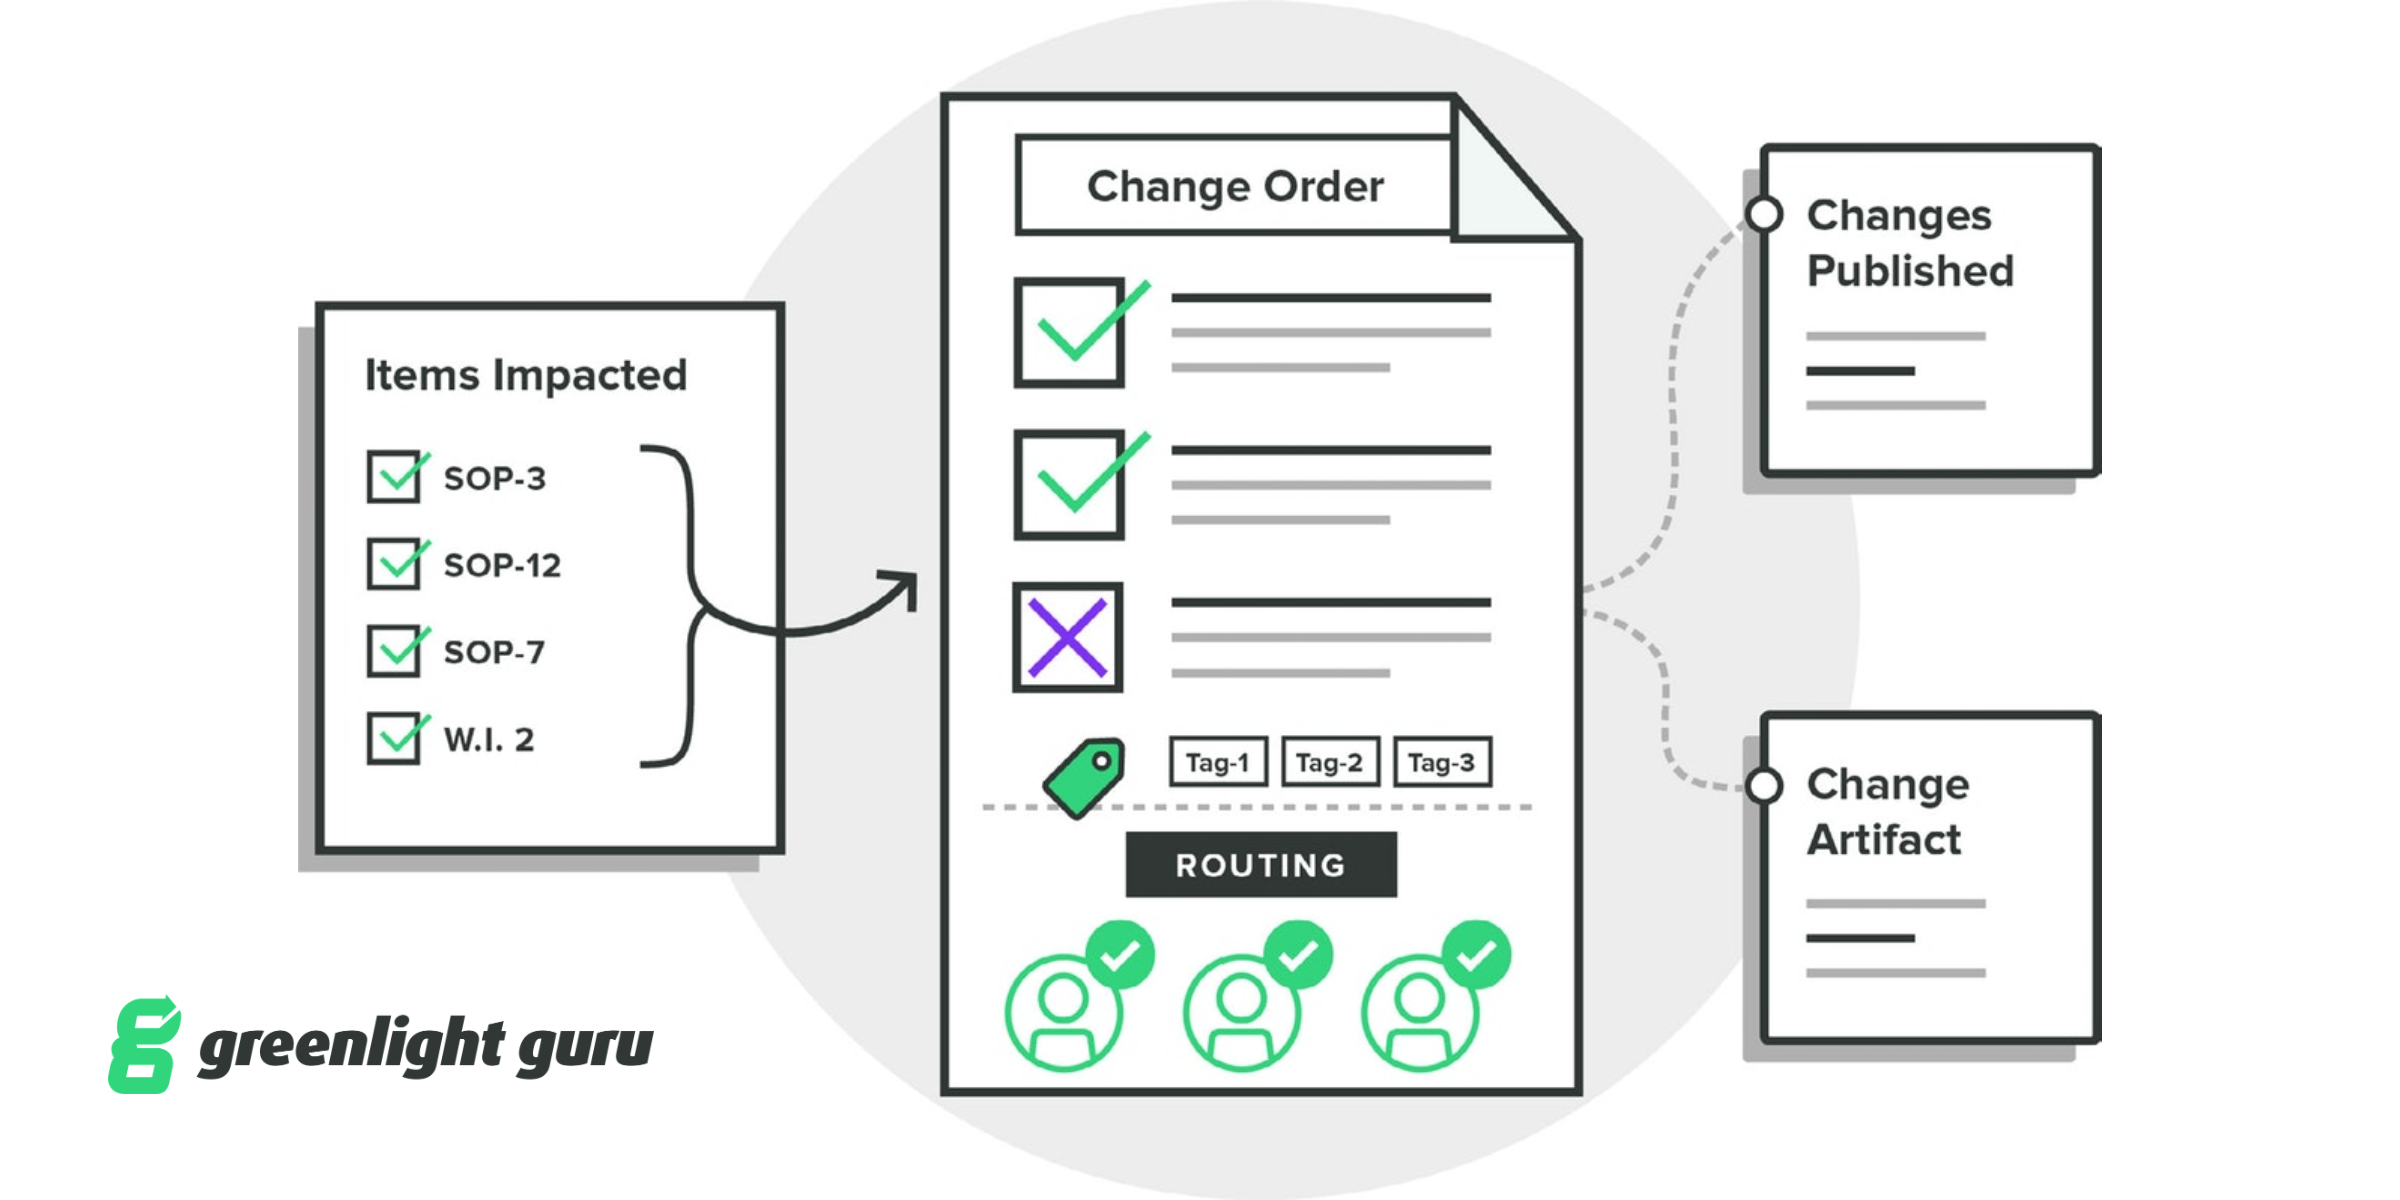 Change Mgmt release featured image